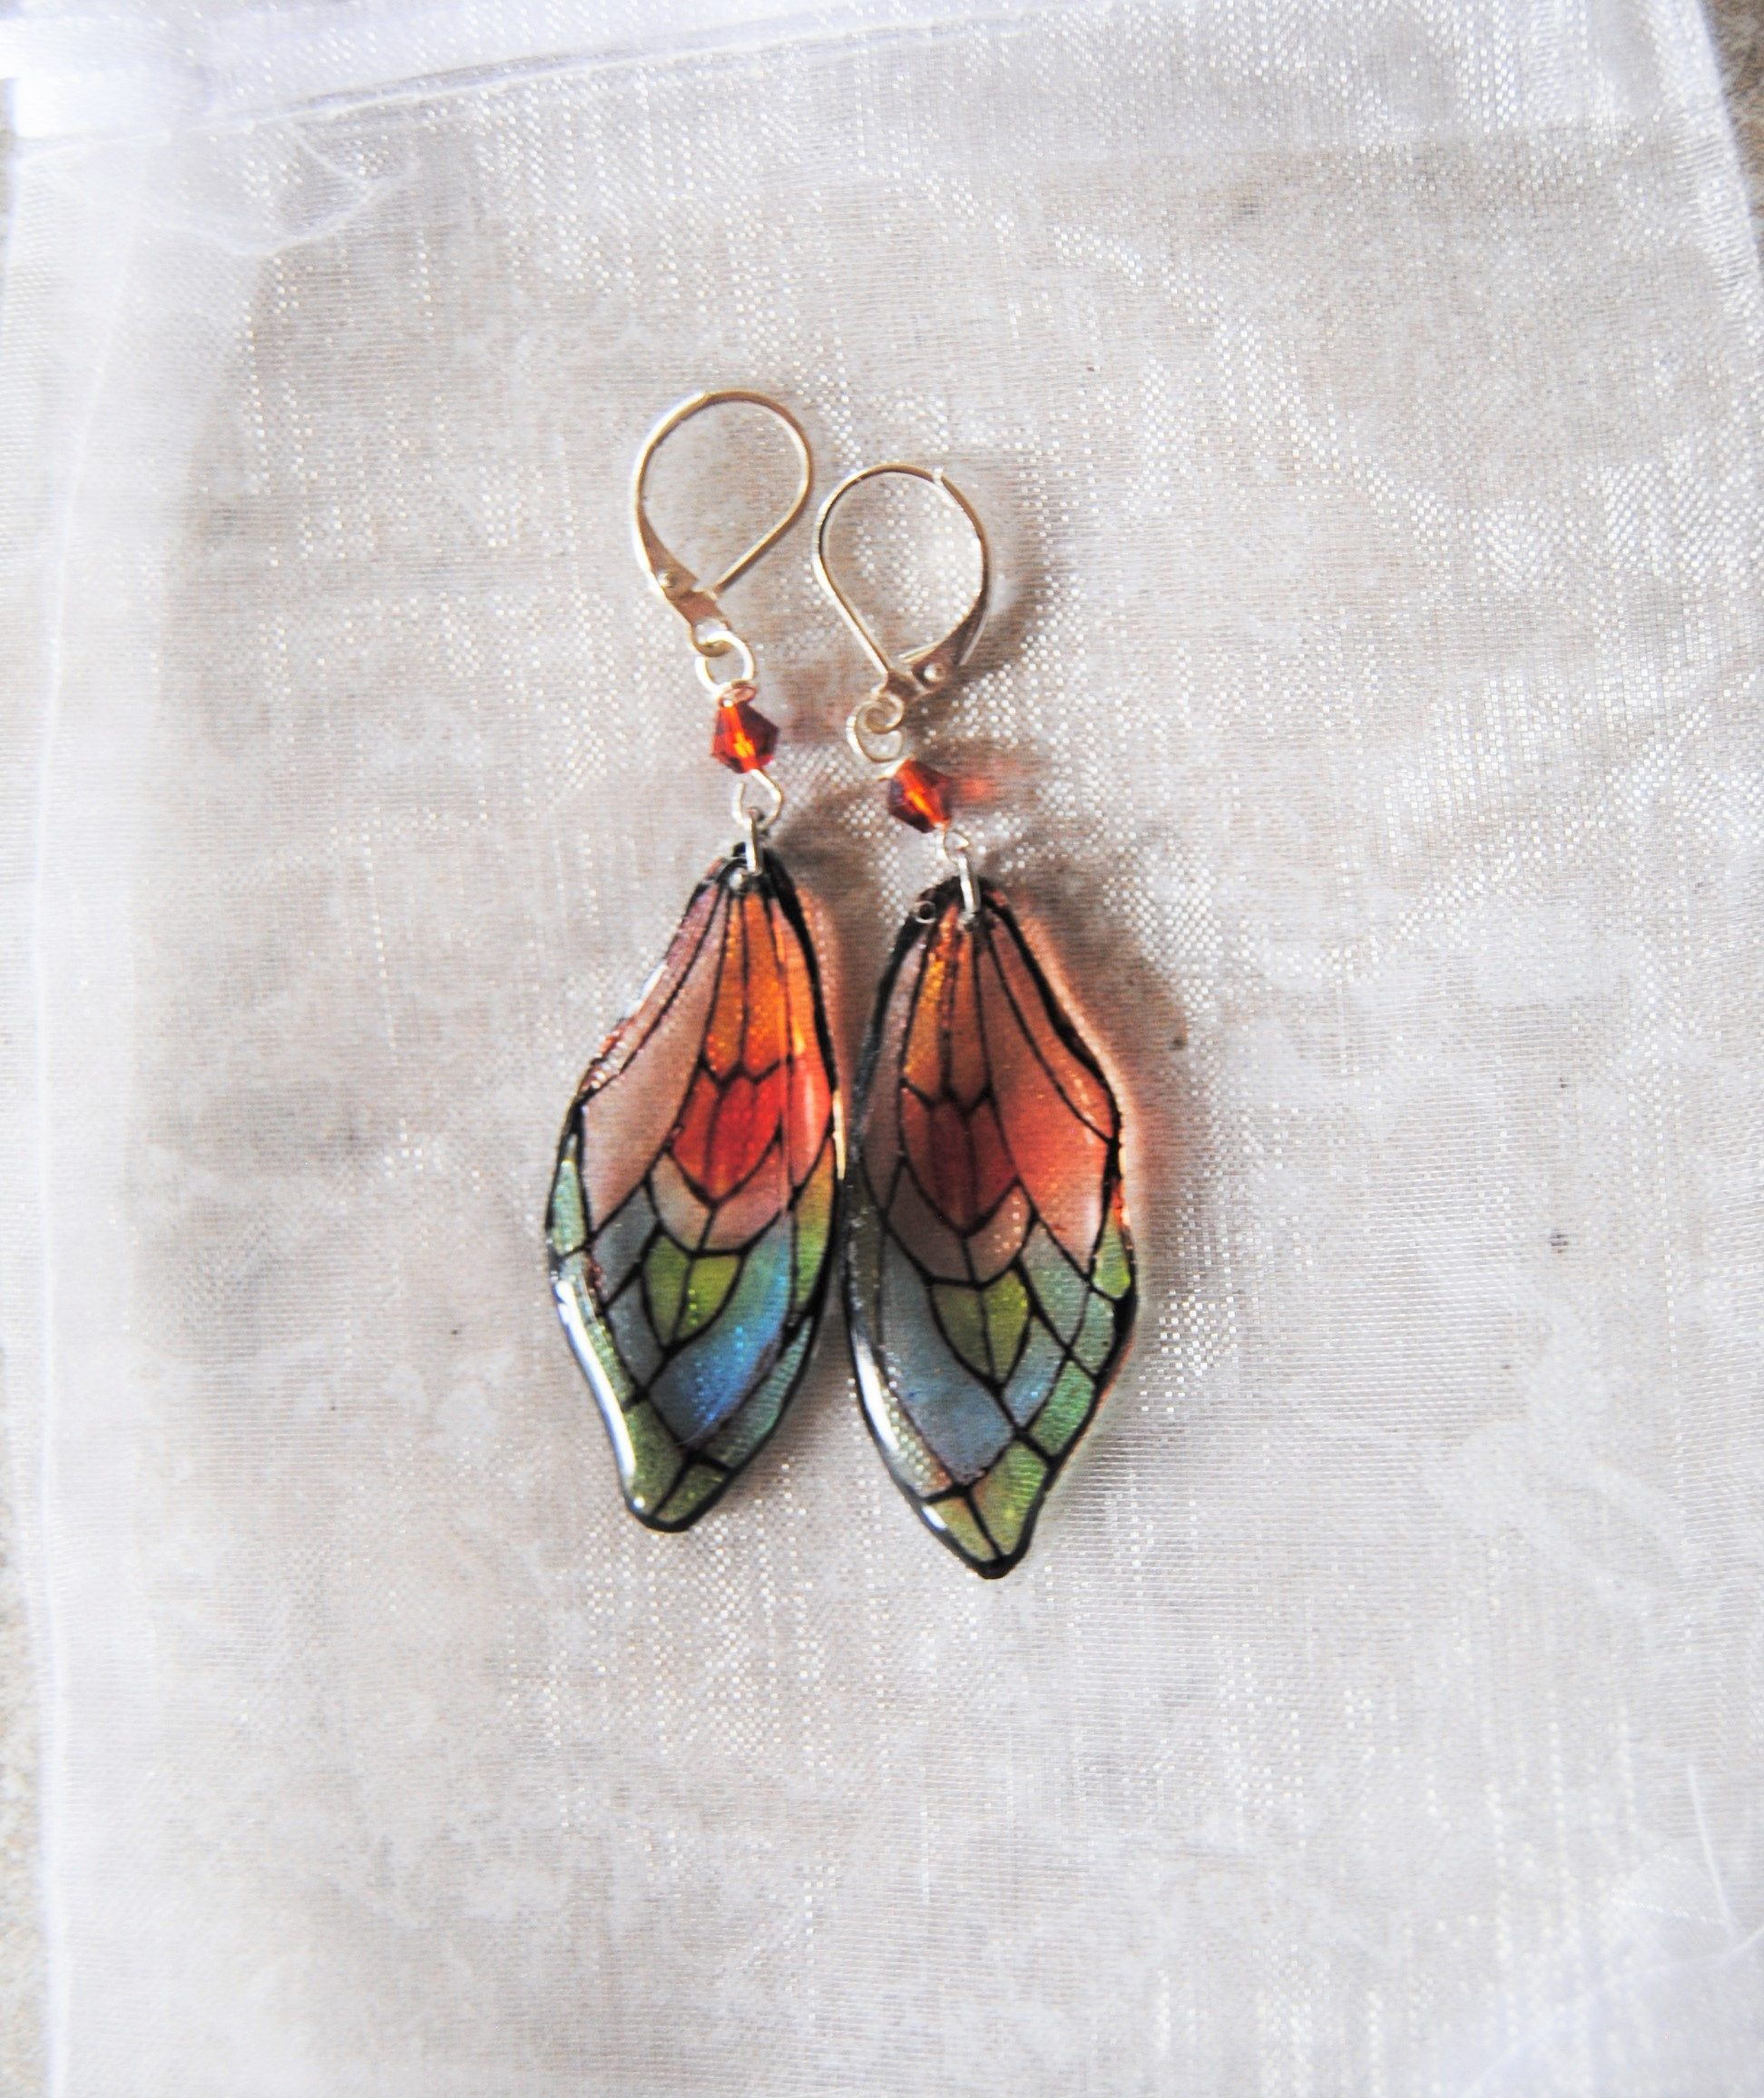 Erfly S Wings Stained Gl Style Boho Chic Inspirational Earrings Dangle